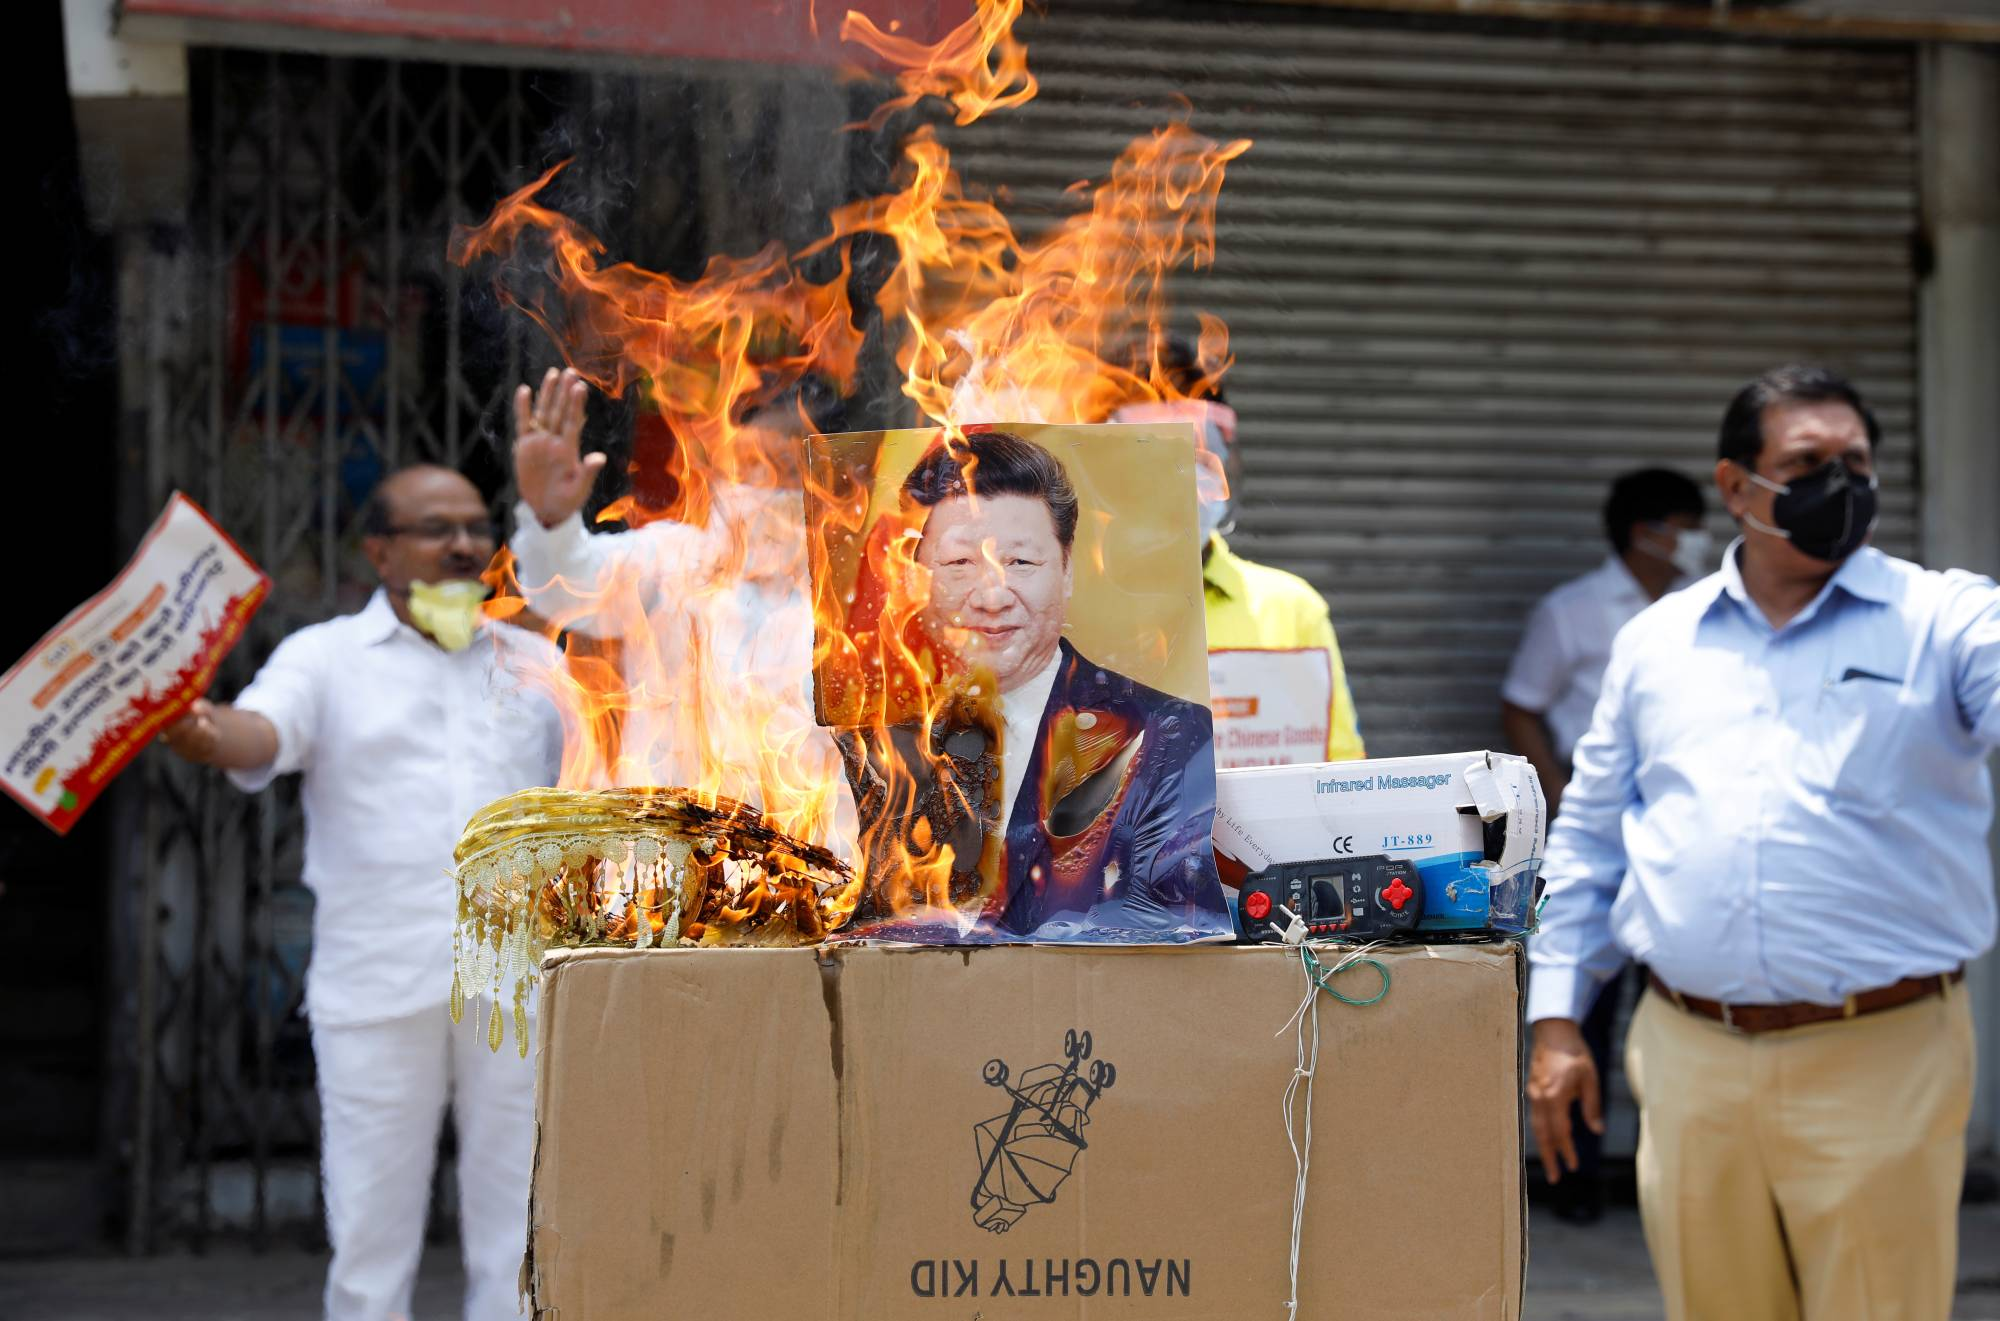 Demonstrators burn products made in China and a defaced poster of Chinese President Xi Jinping during a protest in New Delhi last June. | REUTERS